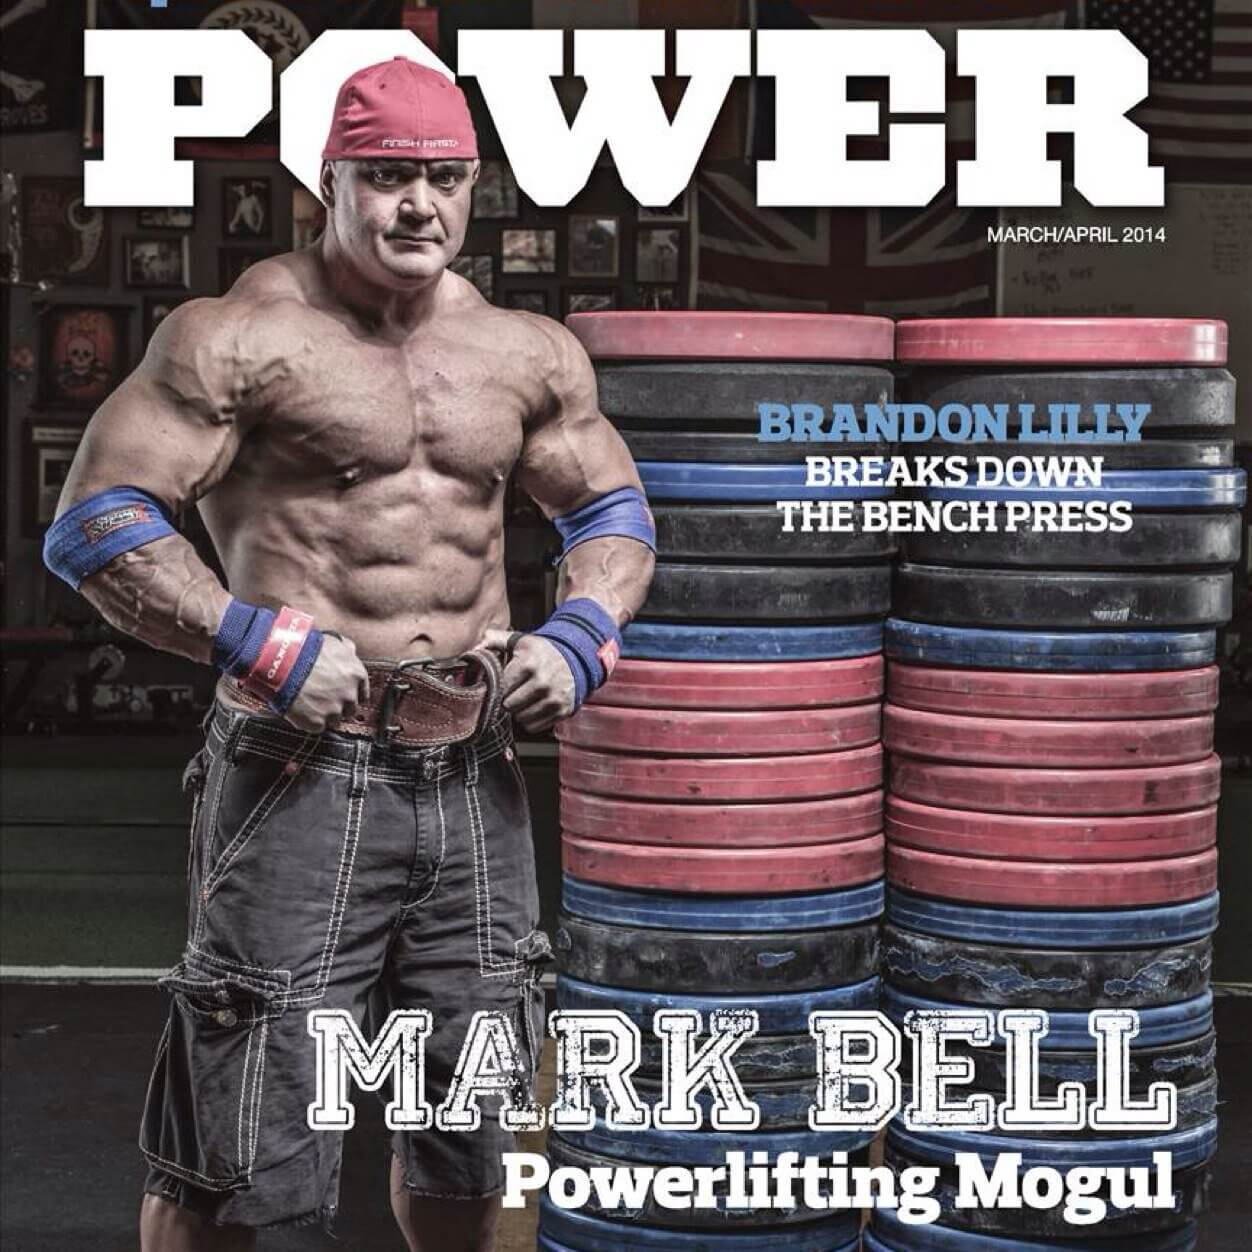 The QuadPod guest Mark Bell